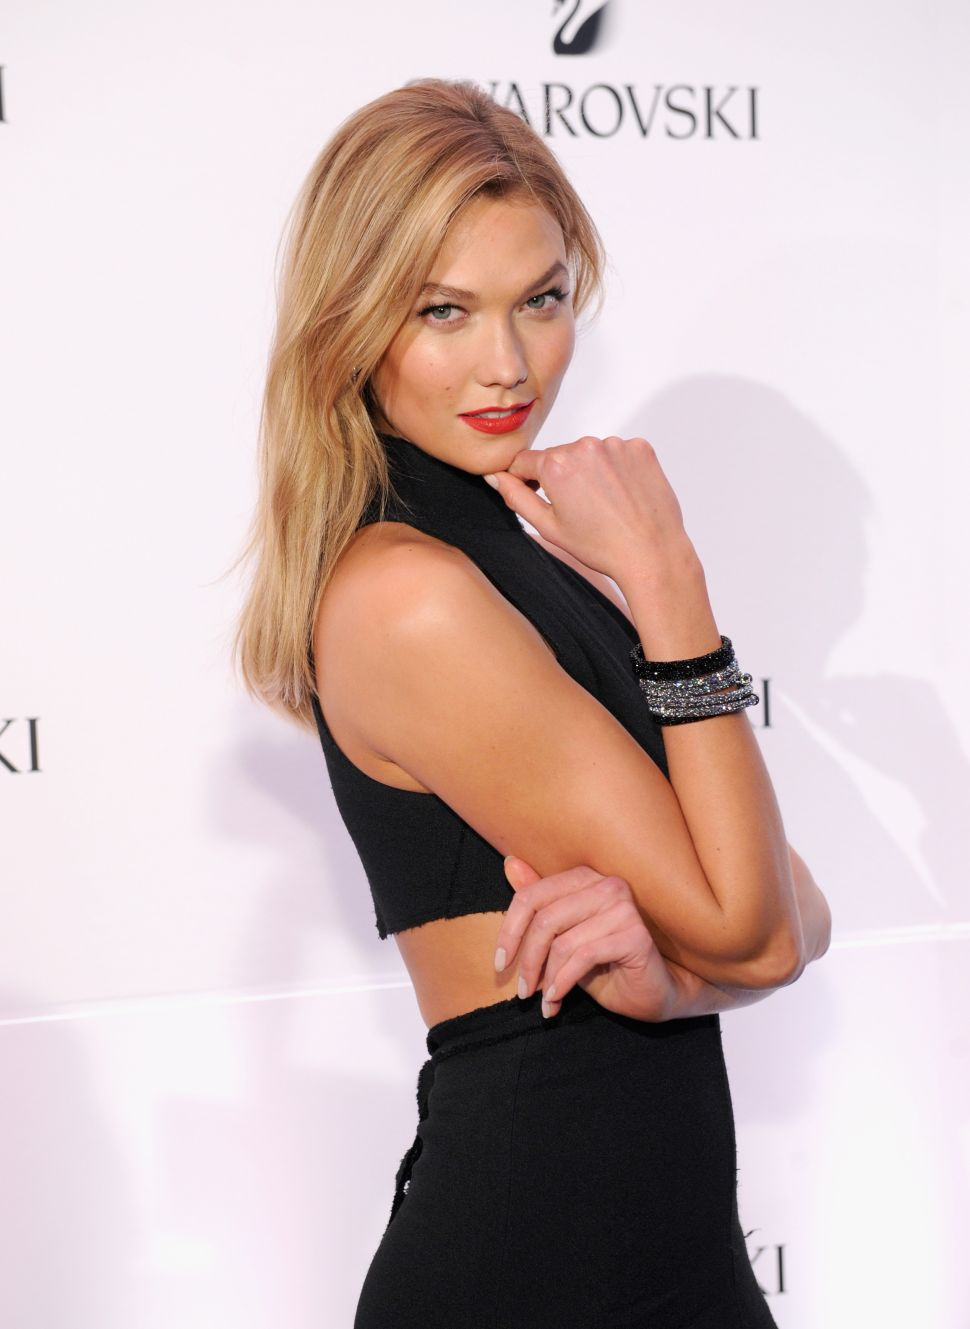 The Reason Behind Karlie Kloss' New Sparkle